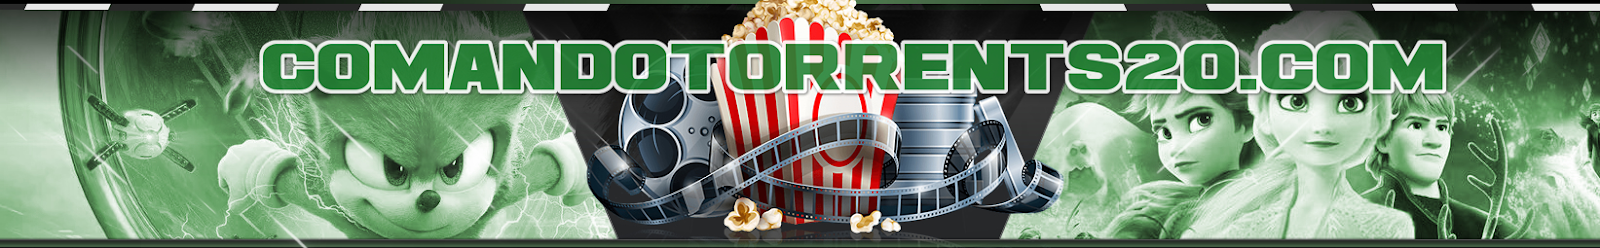 [ Comando Torrents ] Filmes 2021